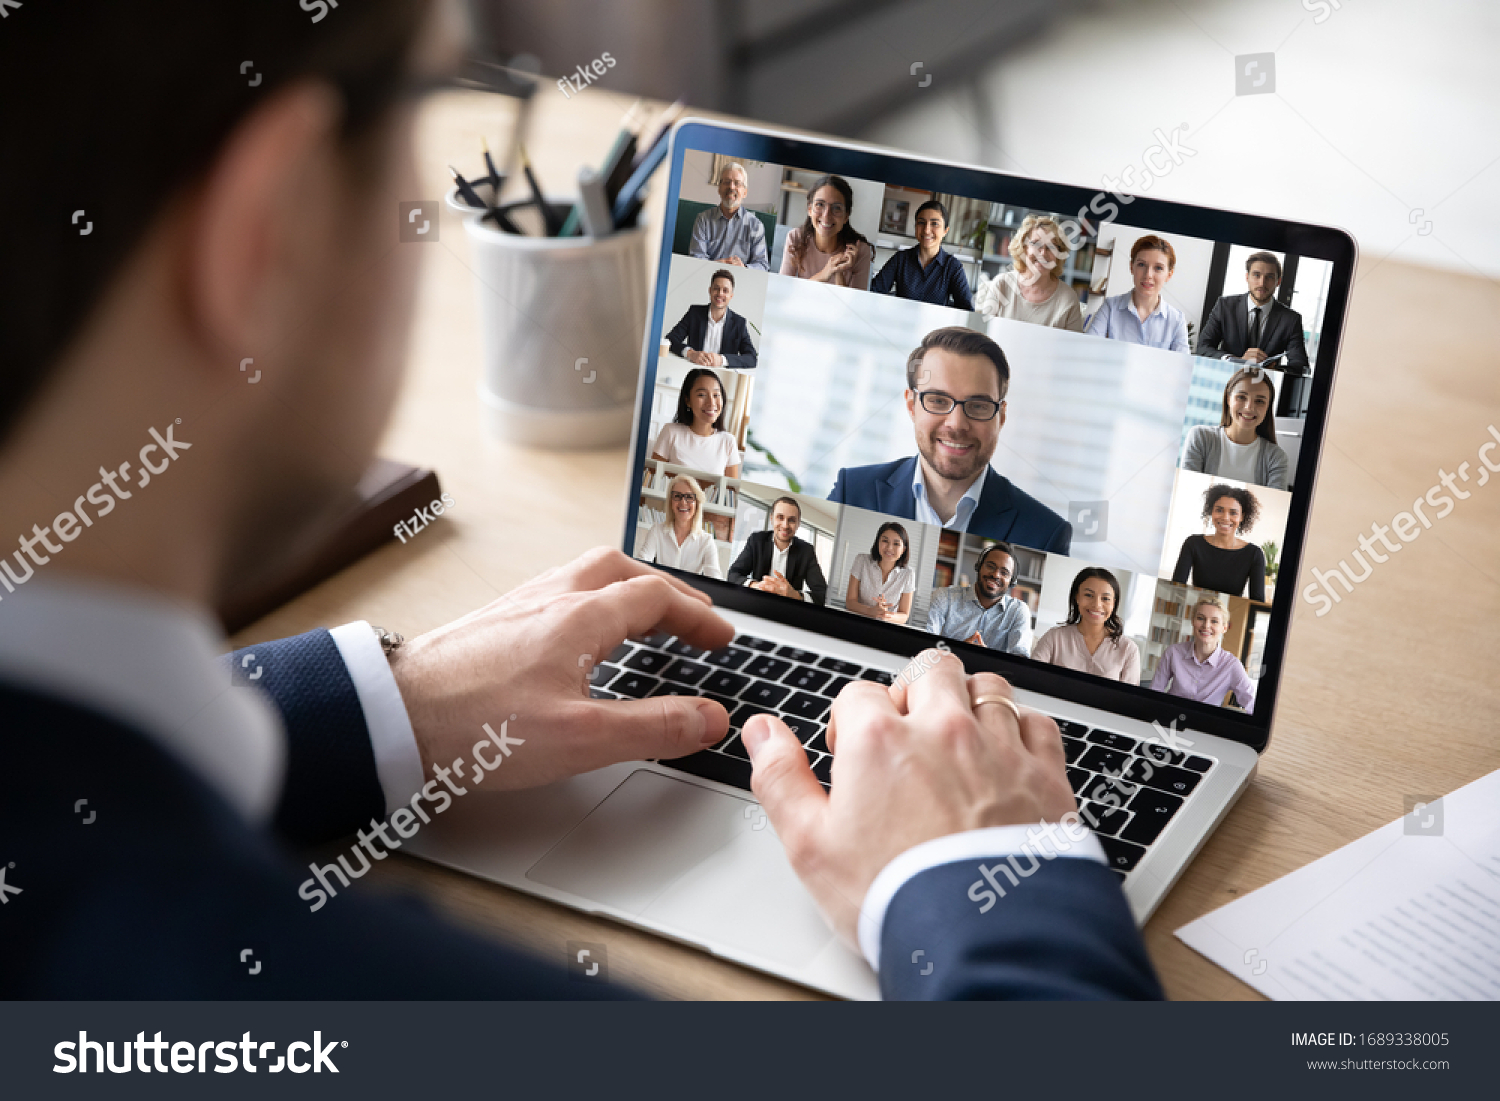 Rear view of businessman speak on web conference with diverse colleagues using laptop Webcam, male employee talk on video call with multiracial coworkers have online meeting briefing from home #1689338005